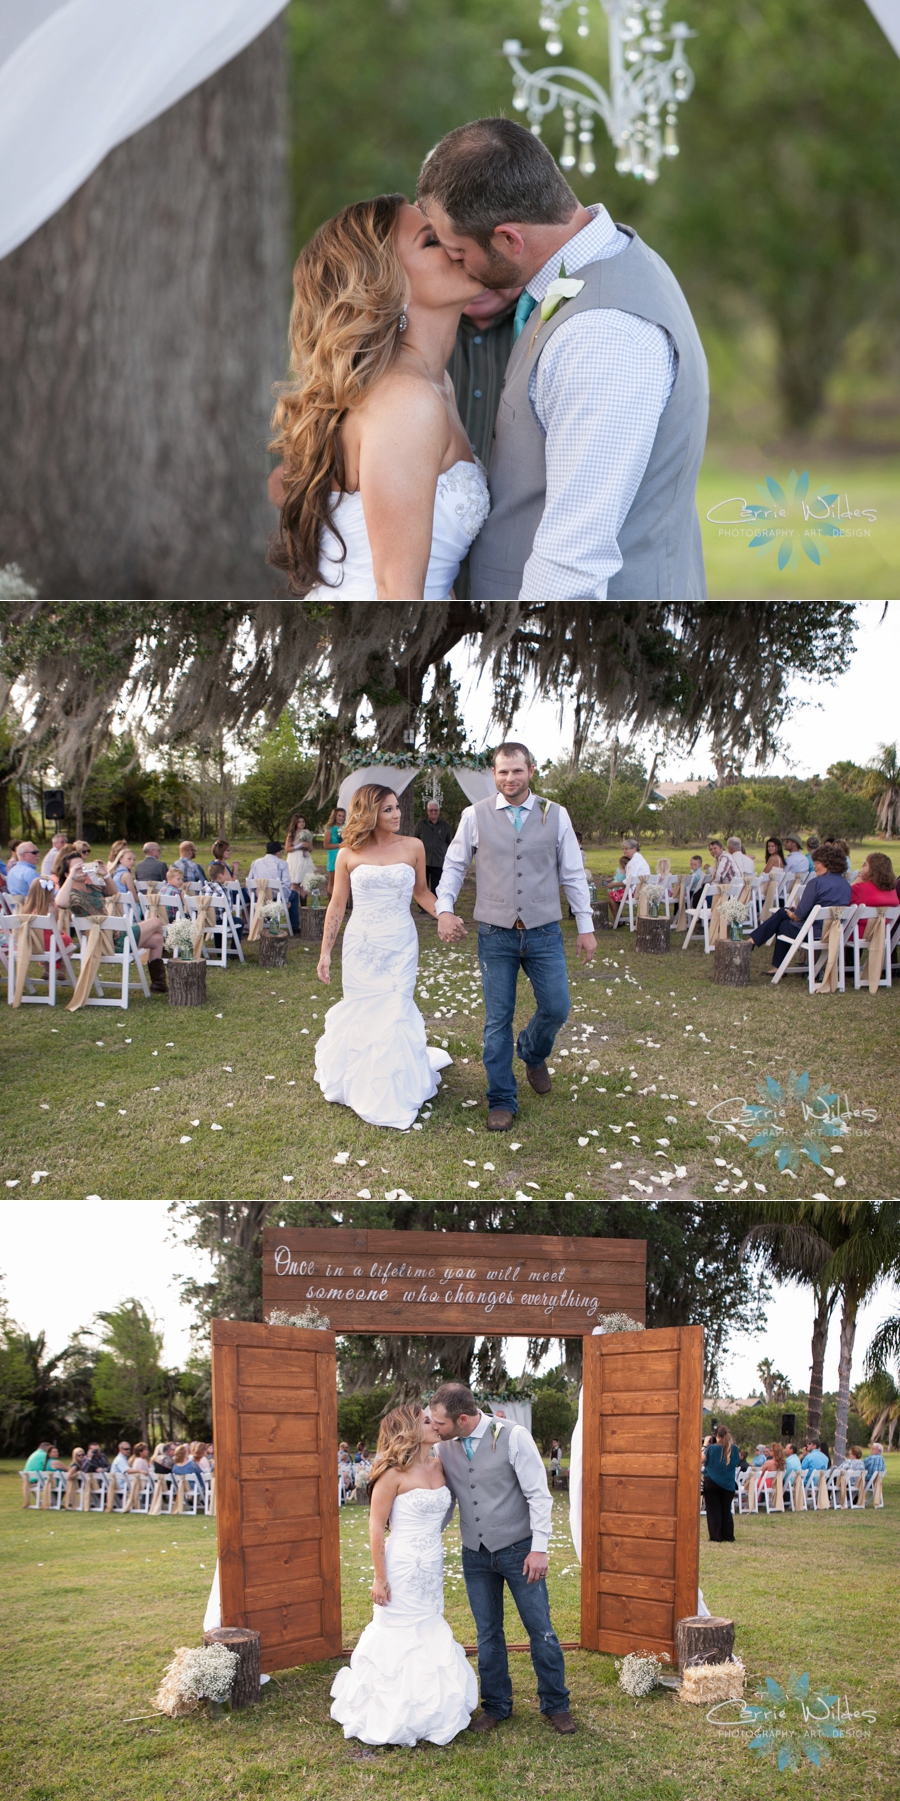 4_16_16 Plant City Rustic Chic Wedding_0011.jpg